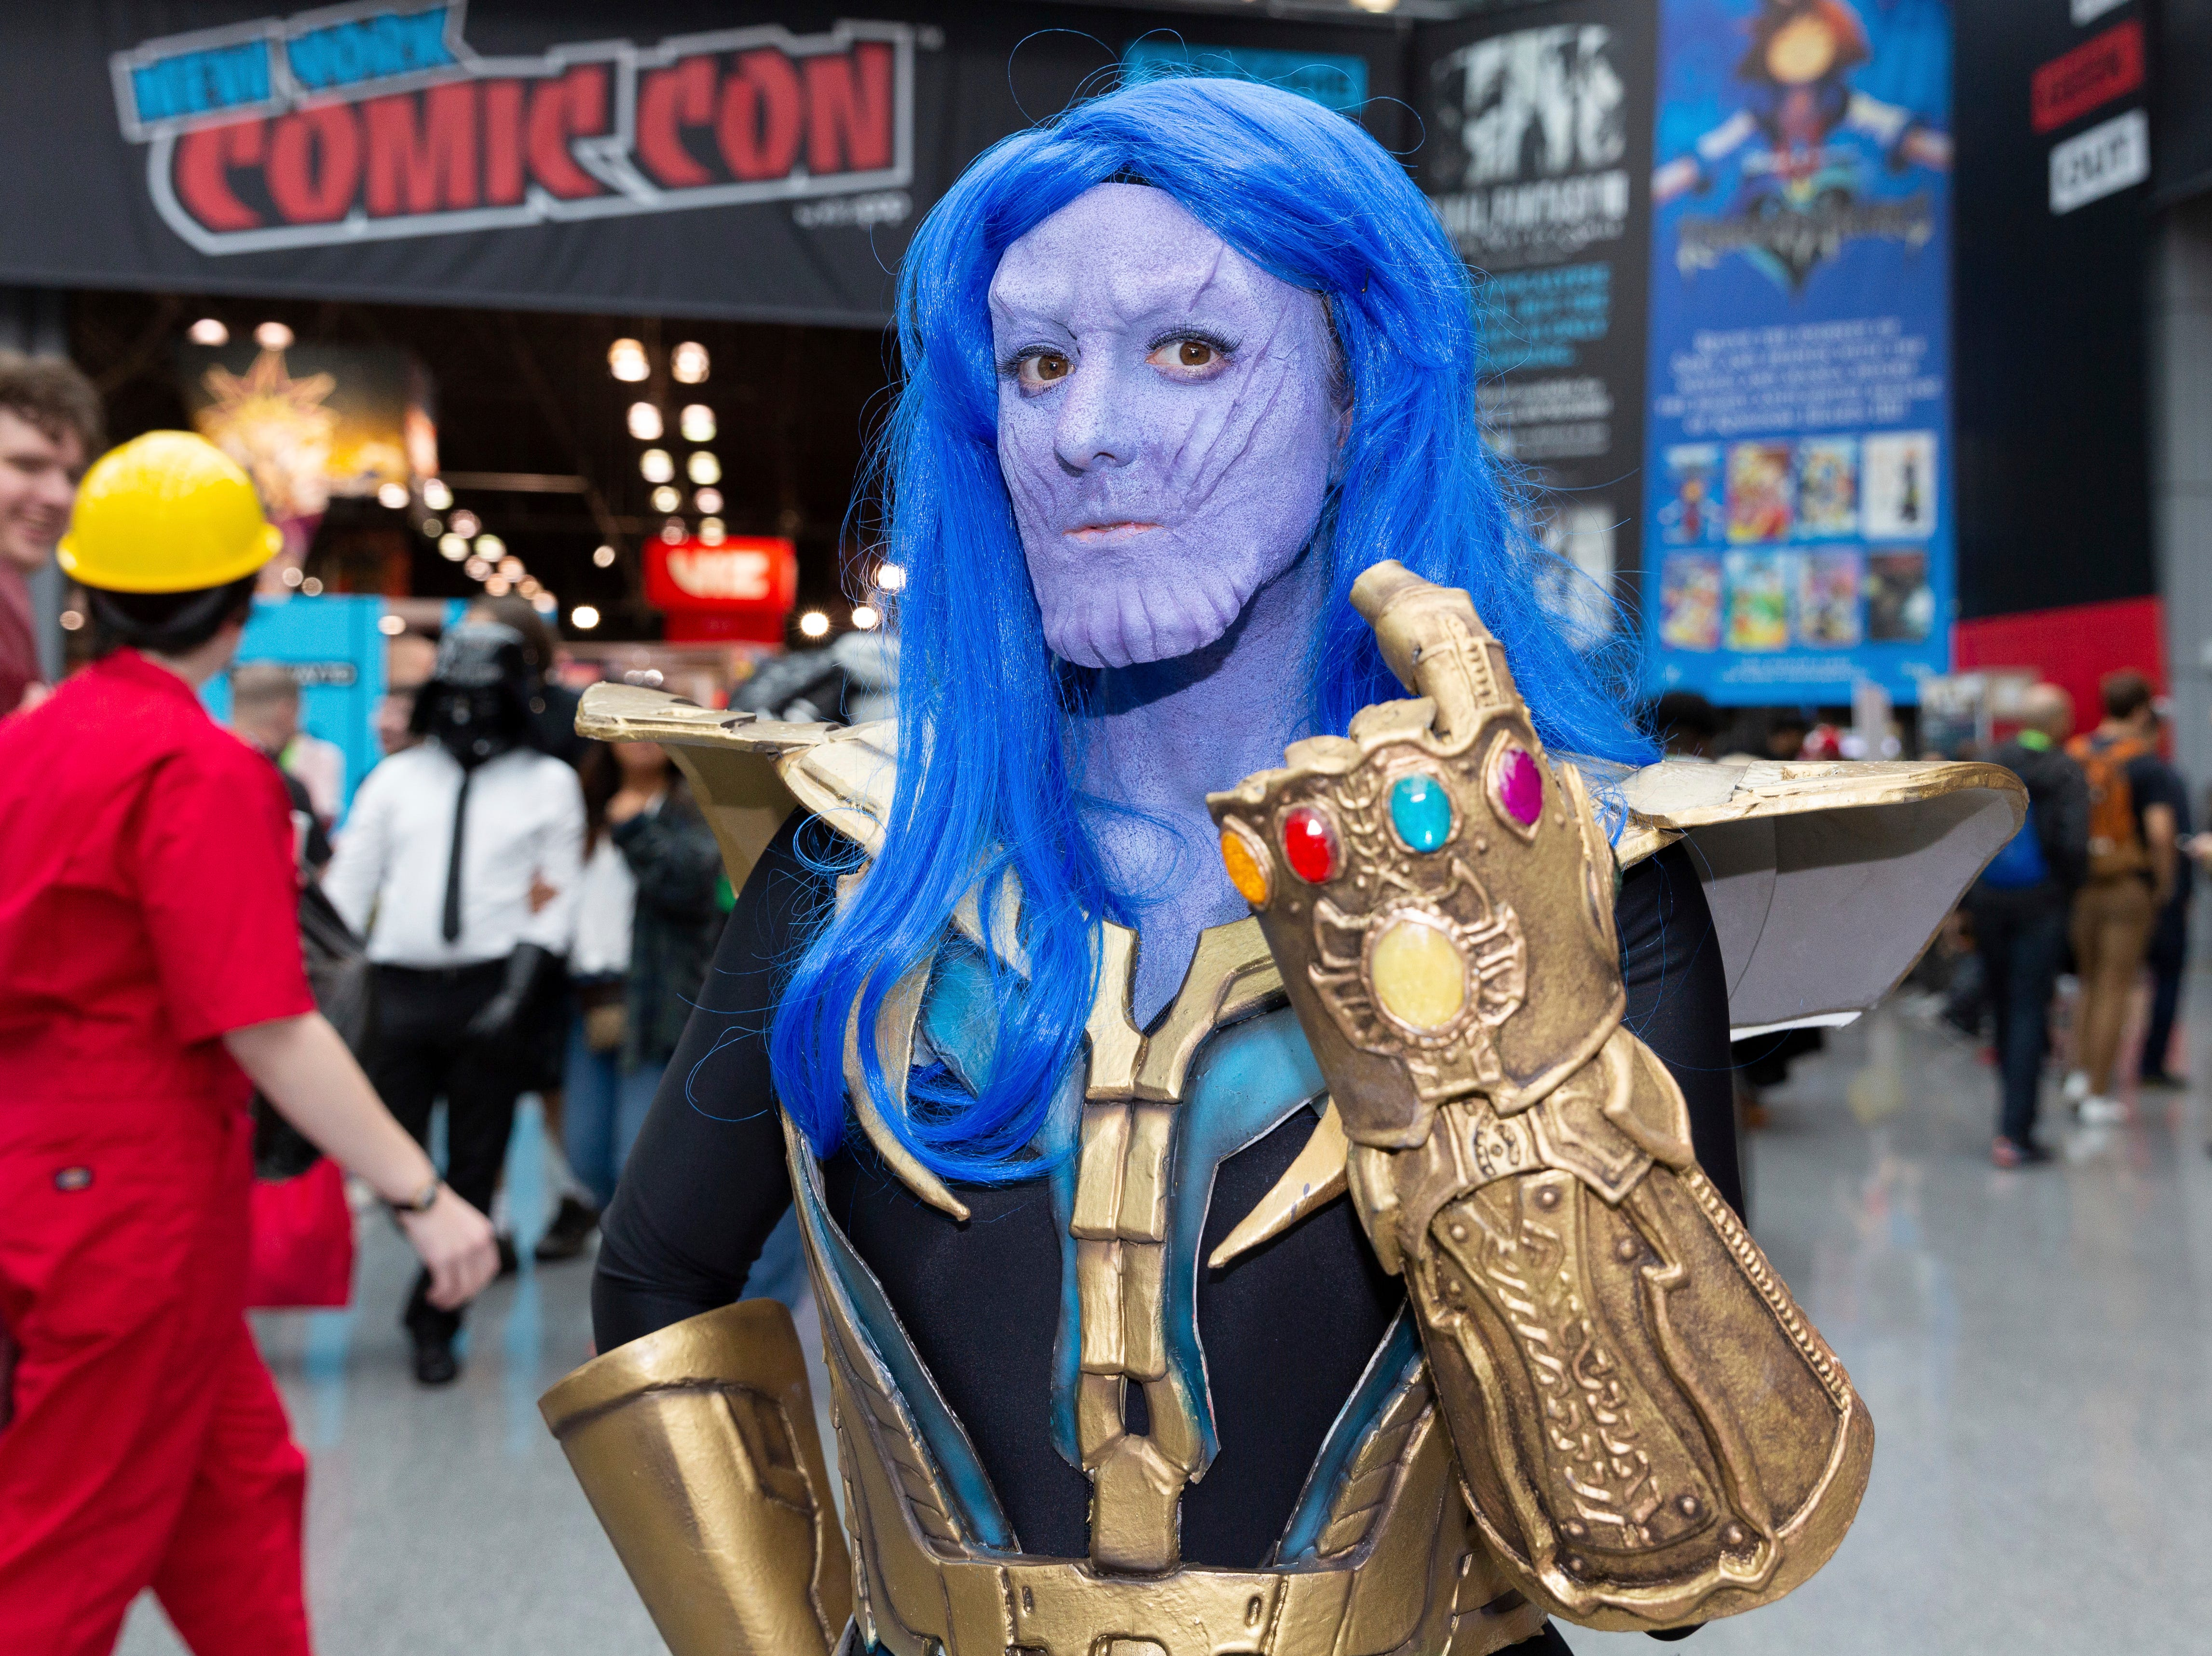 An attendee dressed in costume poses for a photo on the third day of New York Comic Con, Saturday, Oct. 6, 2018. (AP Photo/Steve Luciano)